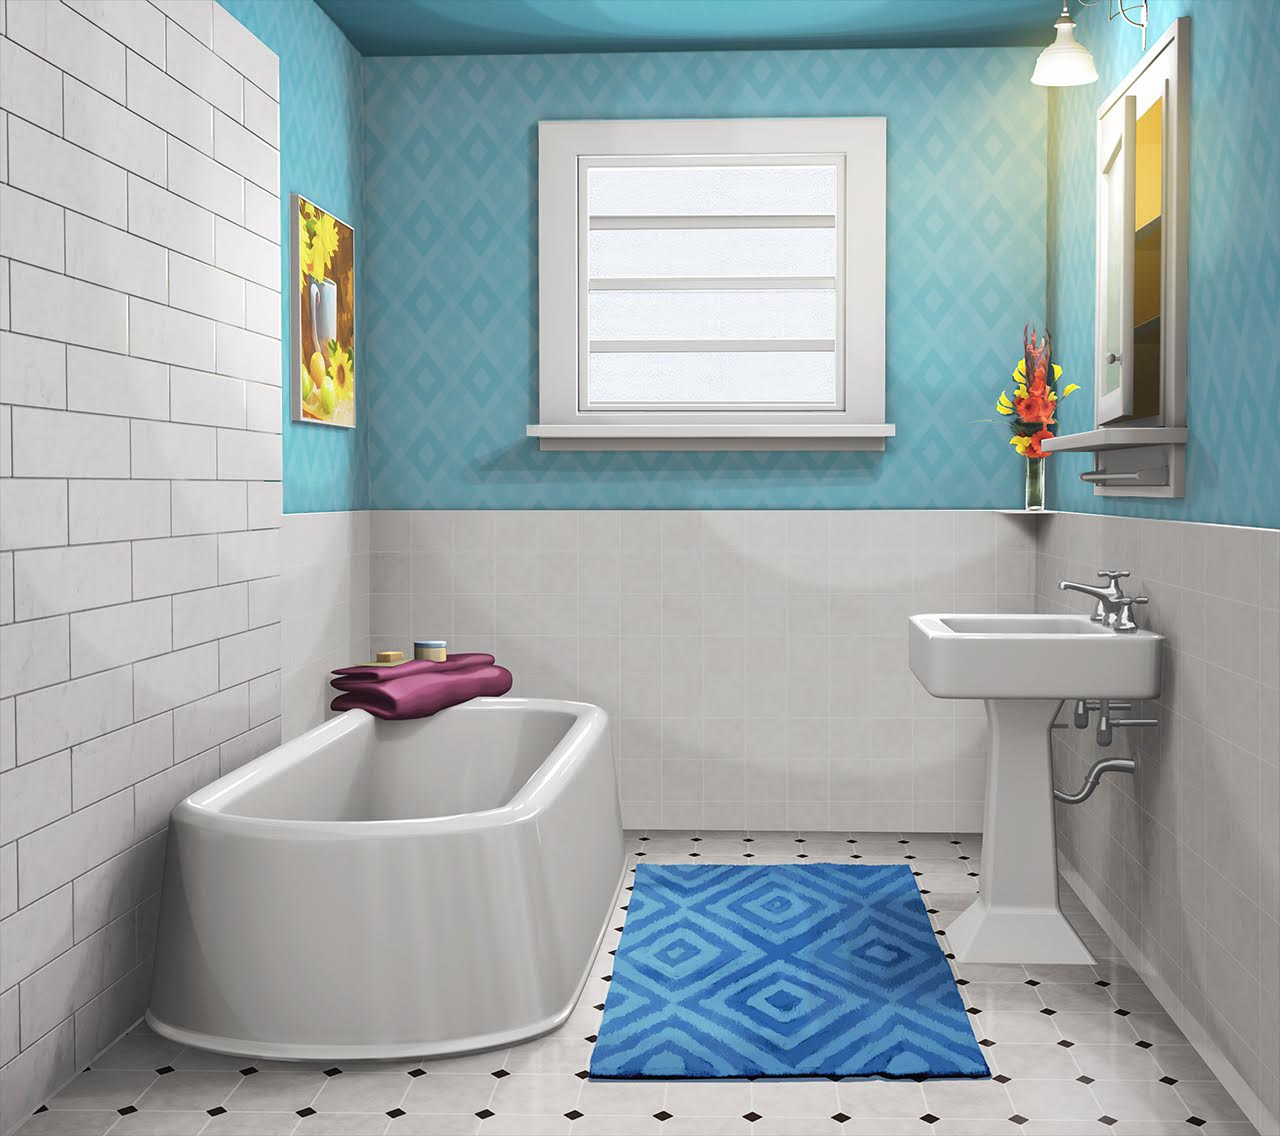 Int Residential Bathroom Sky Blue Day In 2019